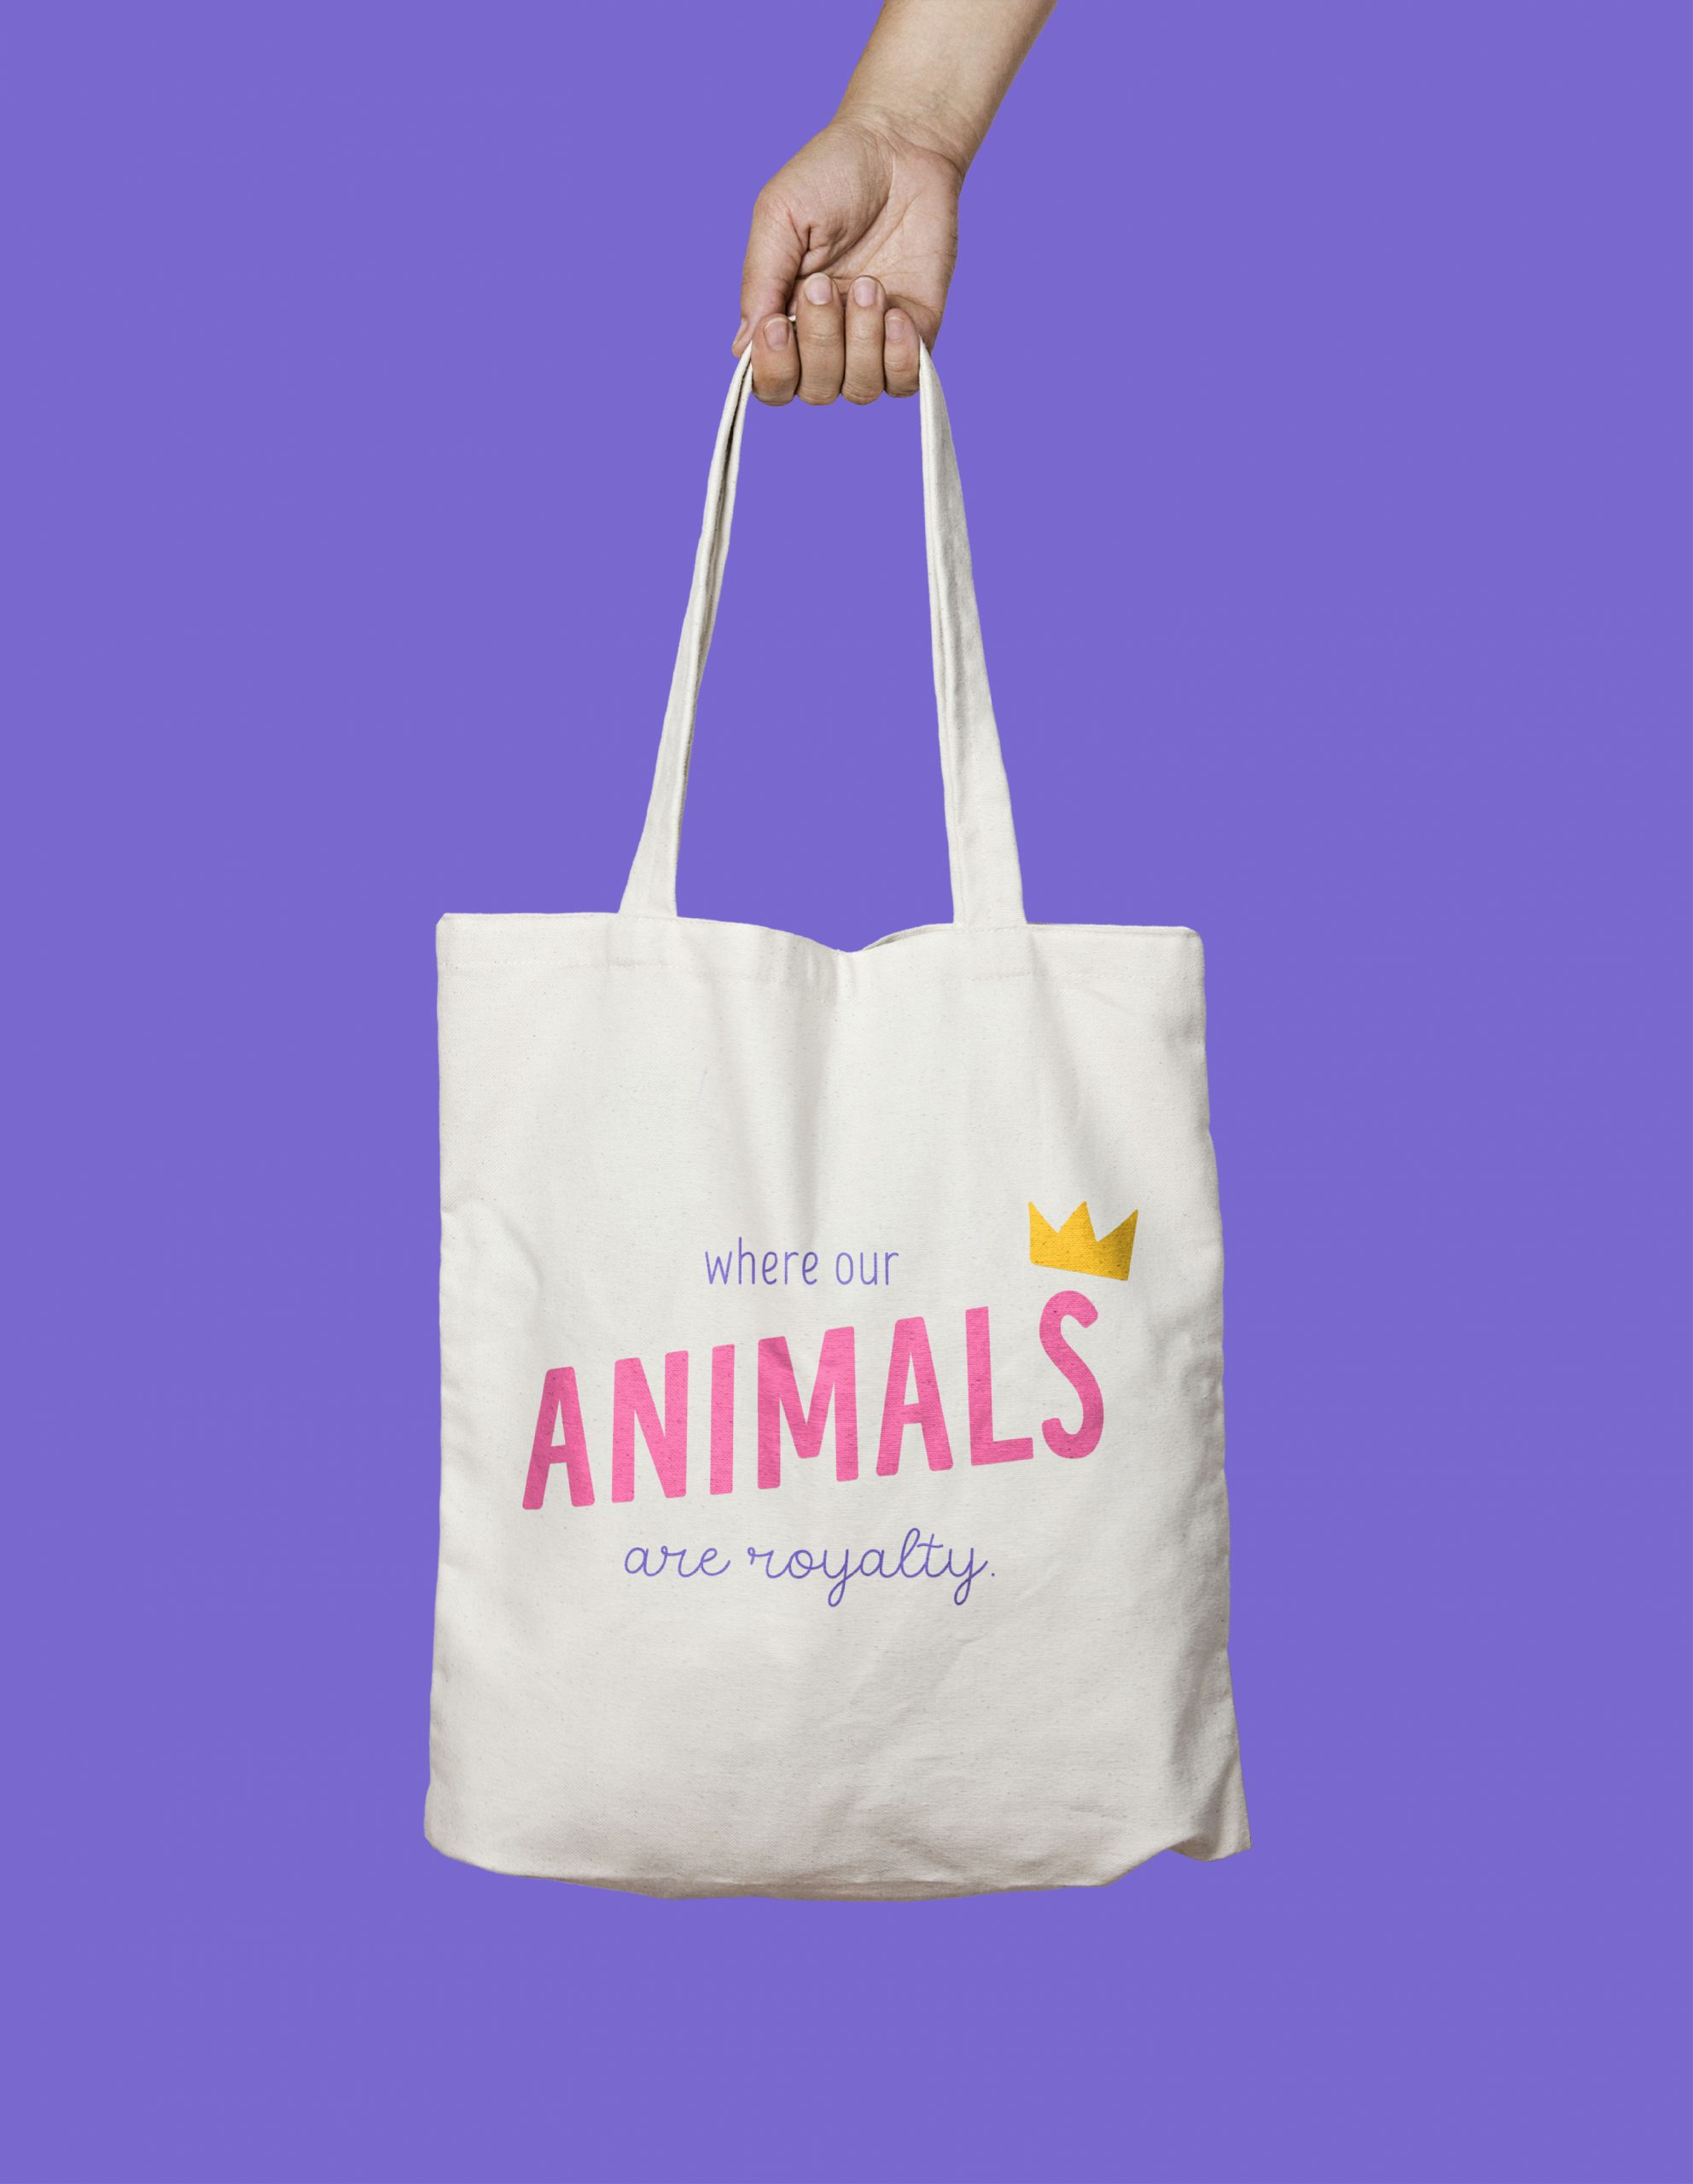 Hand holding a Where our animals are royalty canvas bag